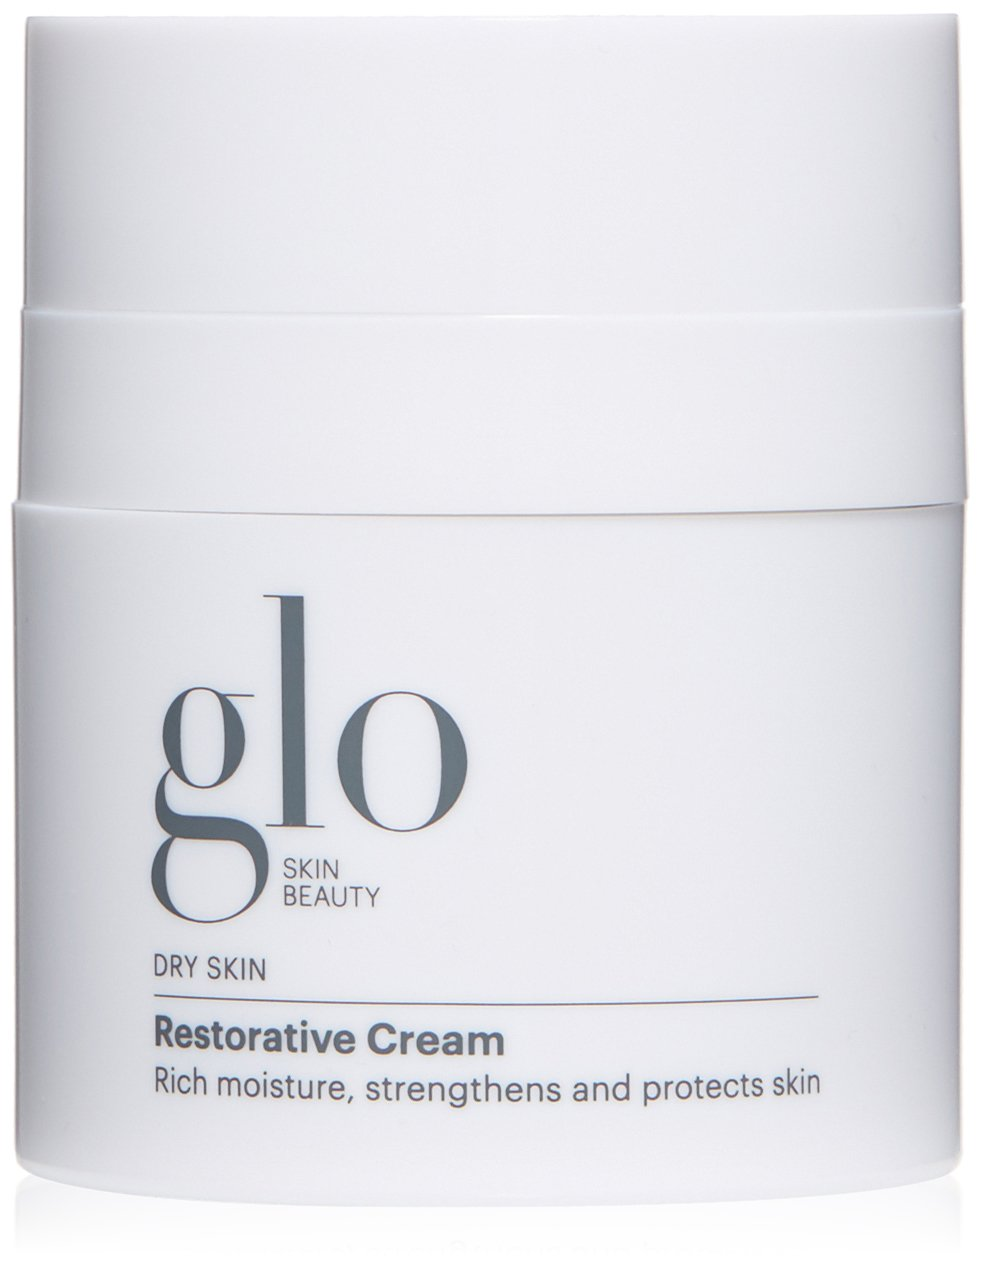 Glo Skin Beauty Restorative Cream for Dry Skin, 1.7 Fl Oz